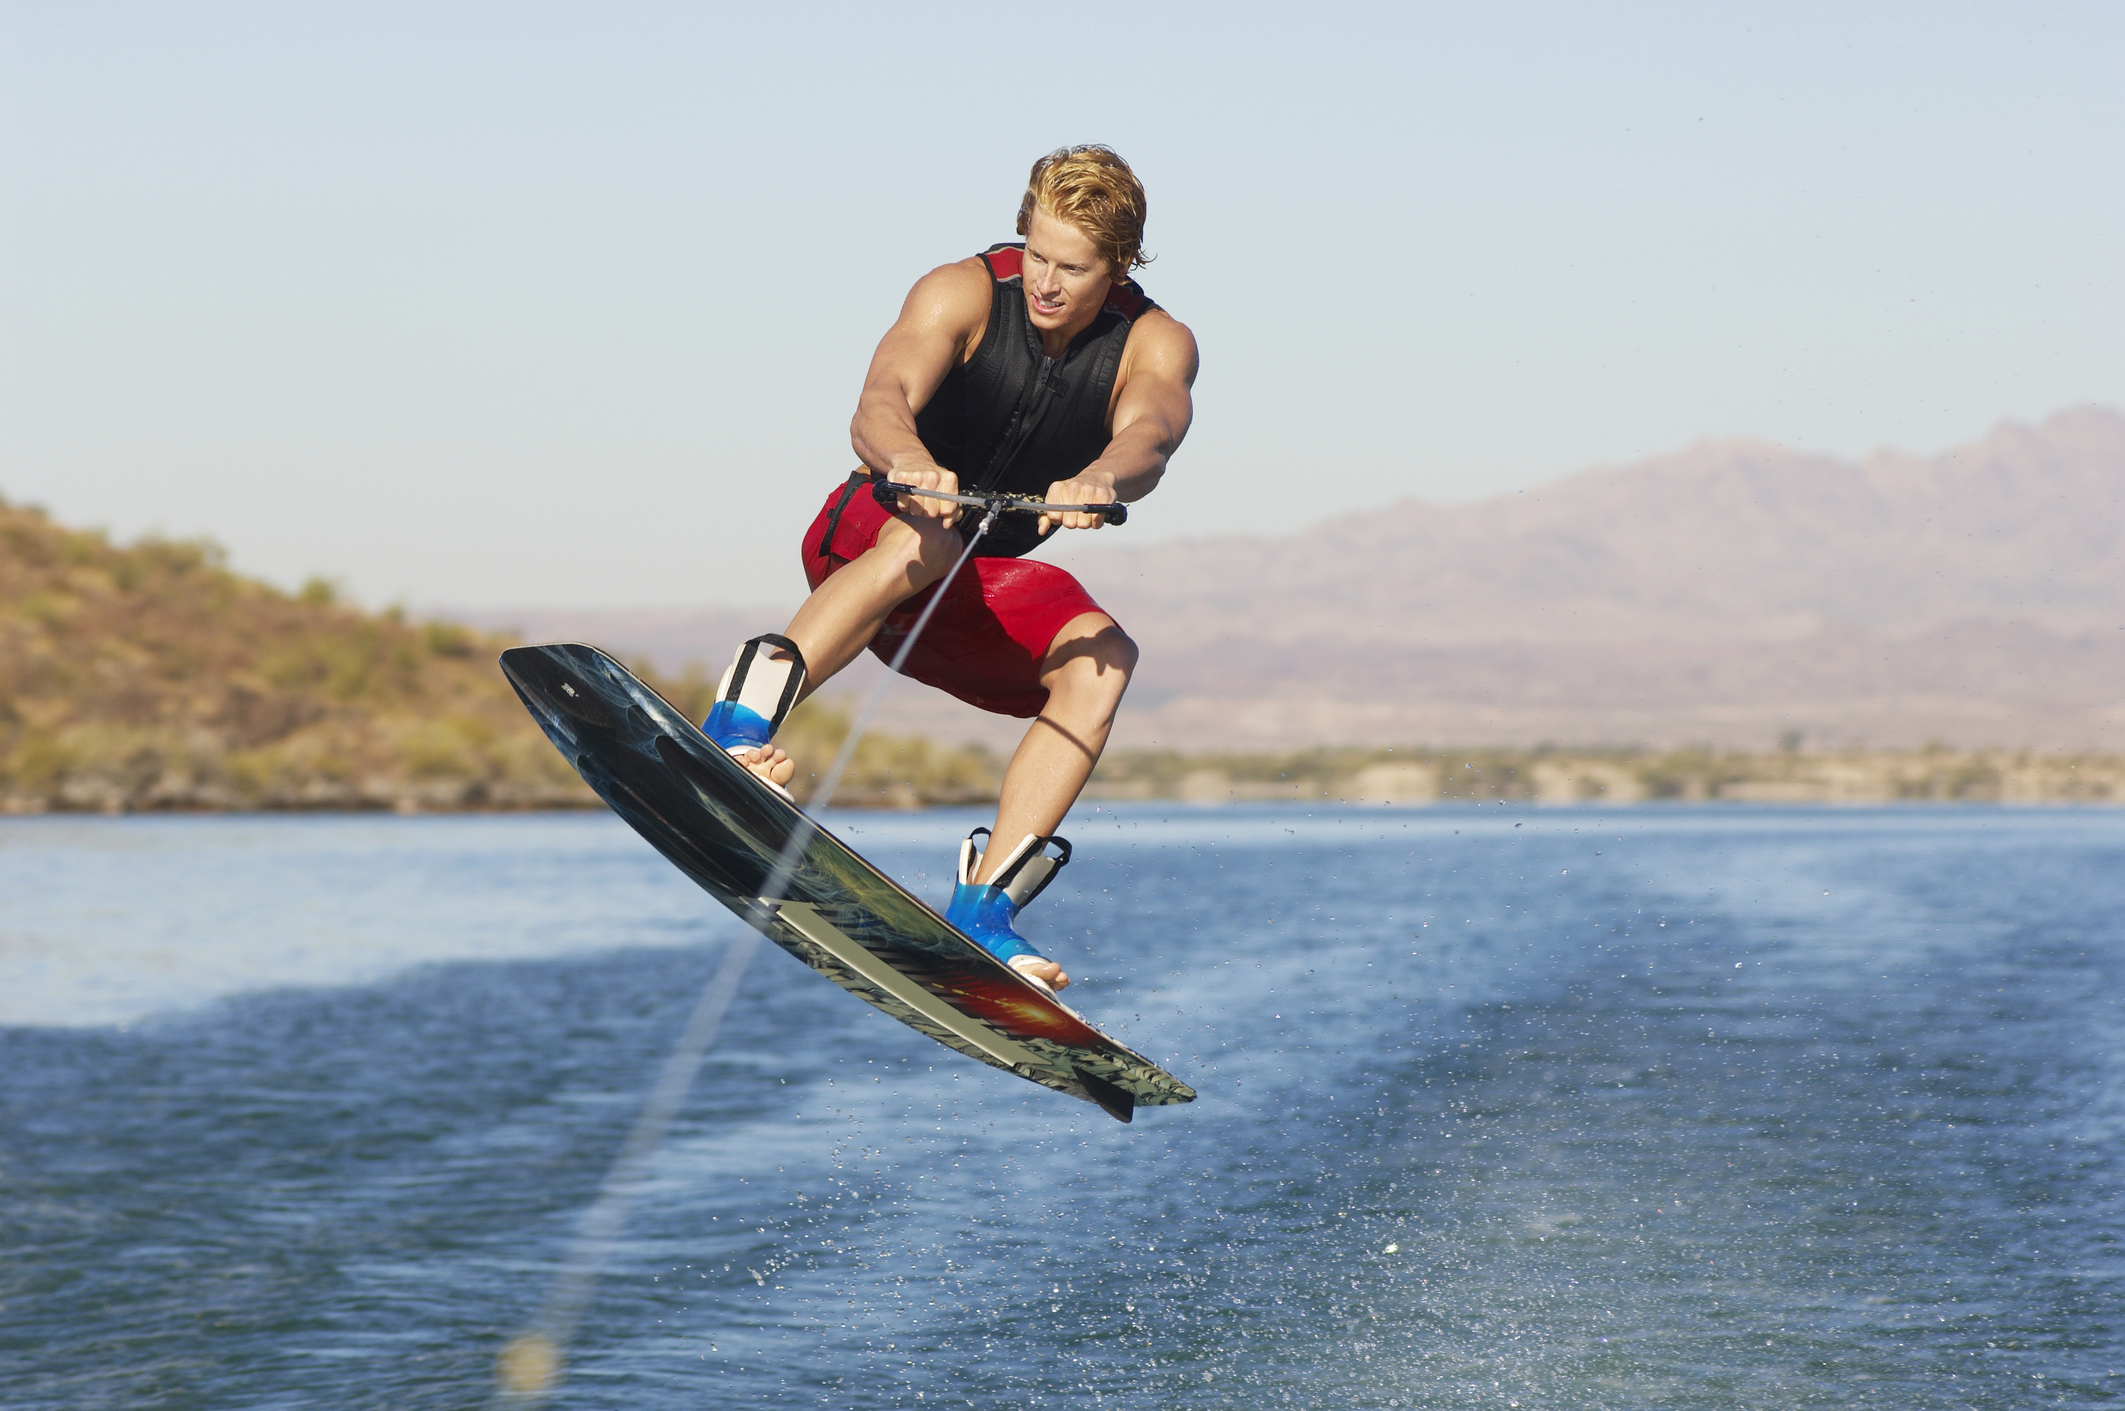 A young guy gets air while wakeboarding